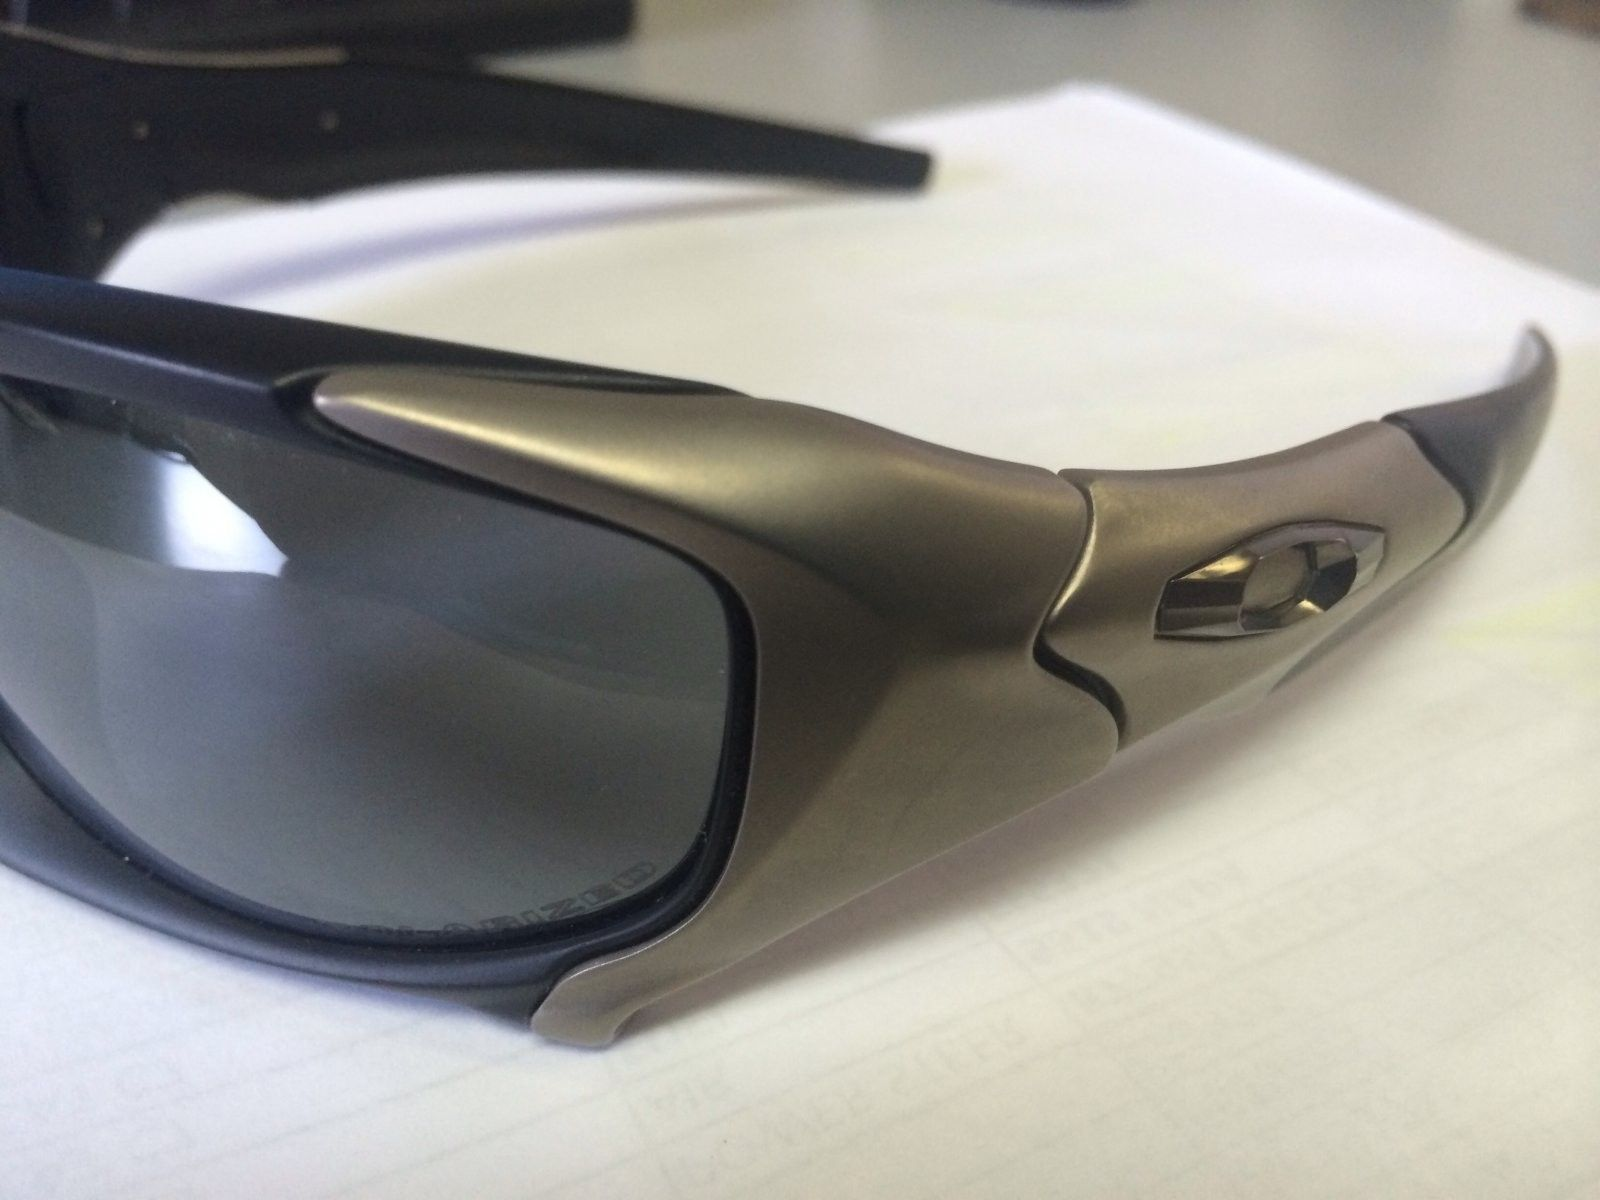 Or Trade Matte Black-Titanium/Black Iridium Polarized Pitboss 1 - image.jpg